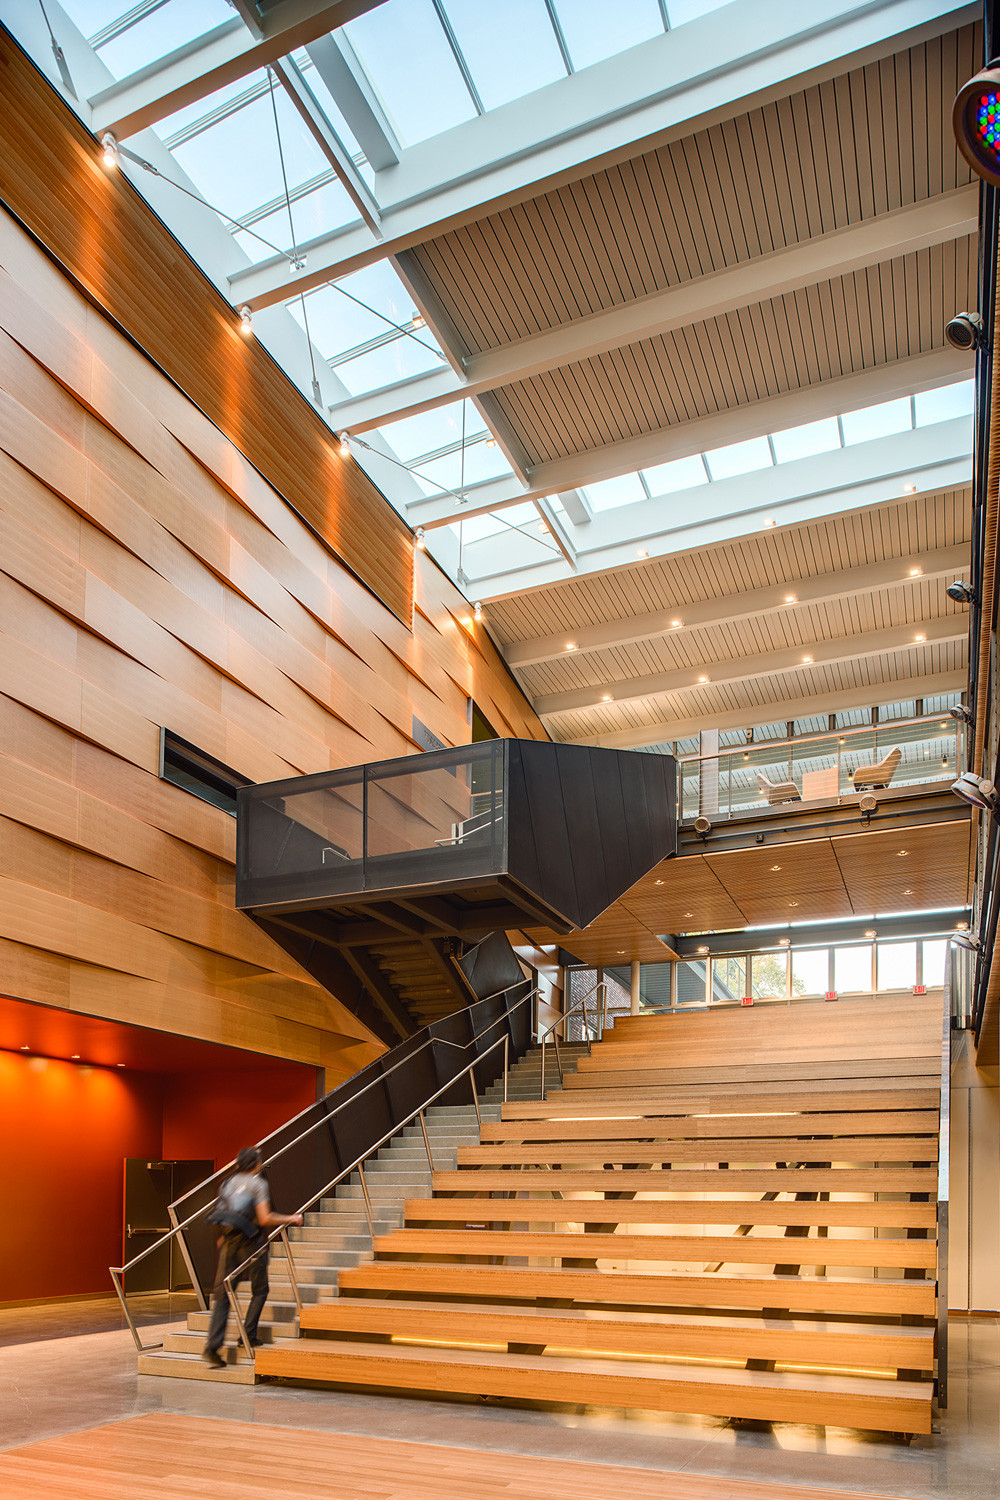 Gallery of 2014 u s wood design award winners 7 for College building design